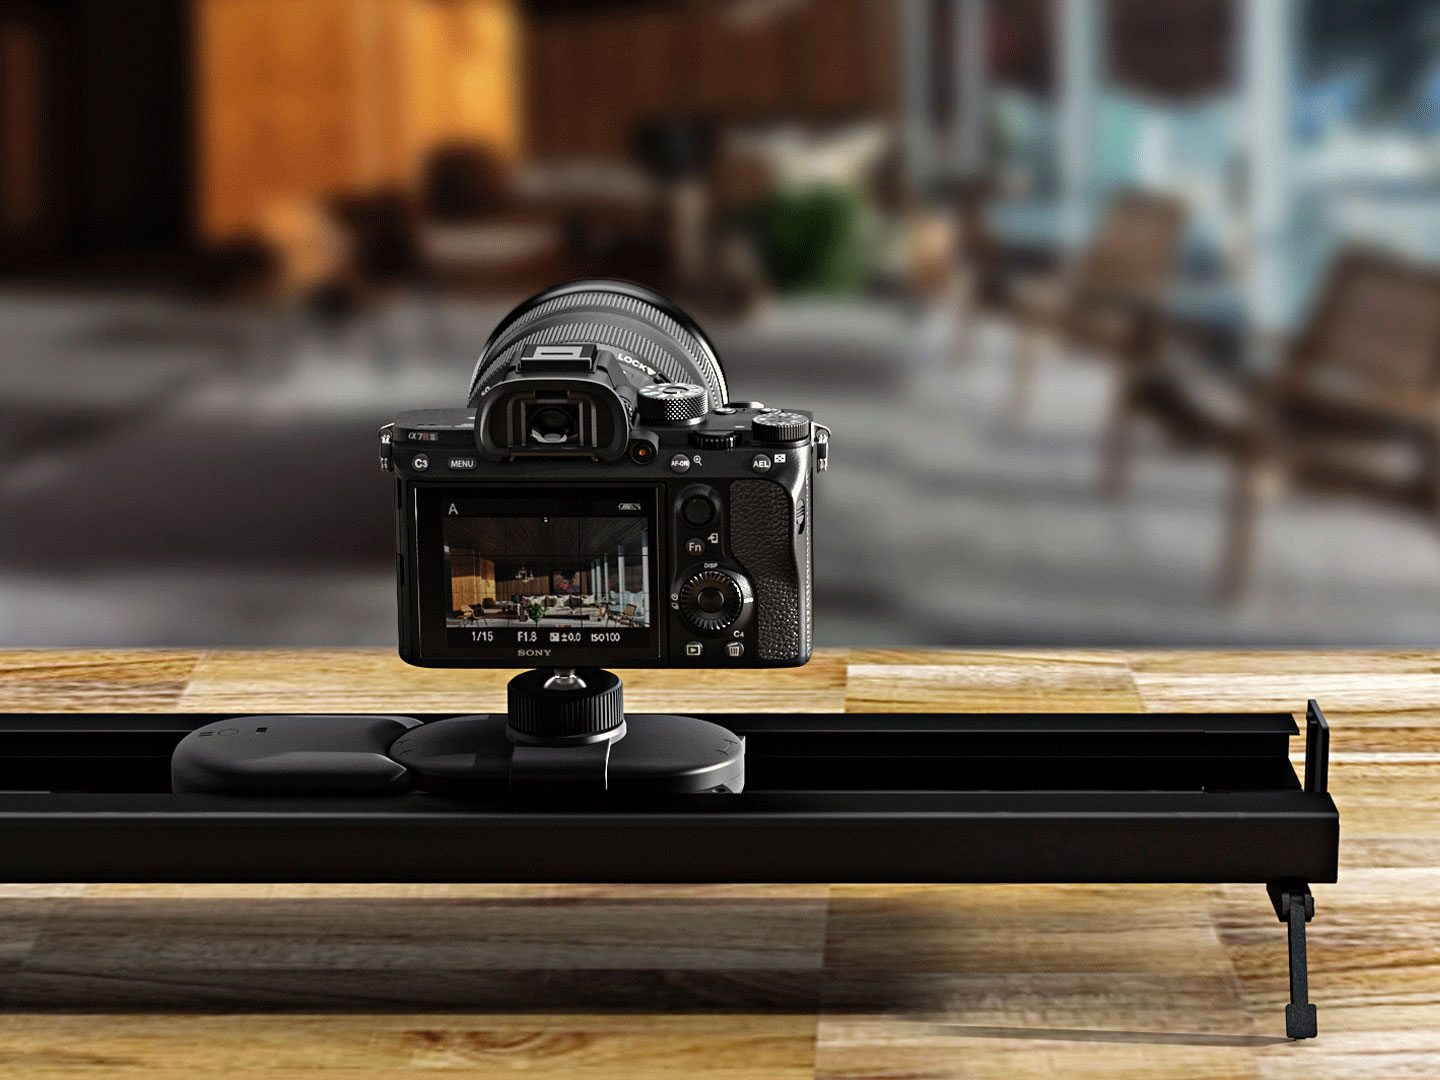 Track the slider is designed for both outdoor and indoor for you to shoot cinematic videos.